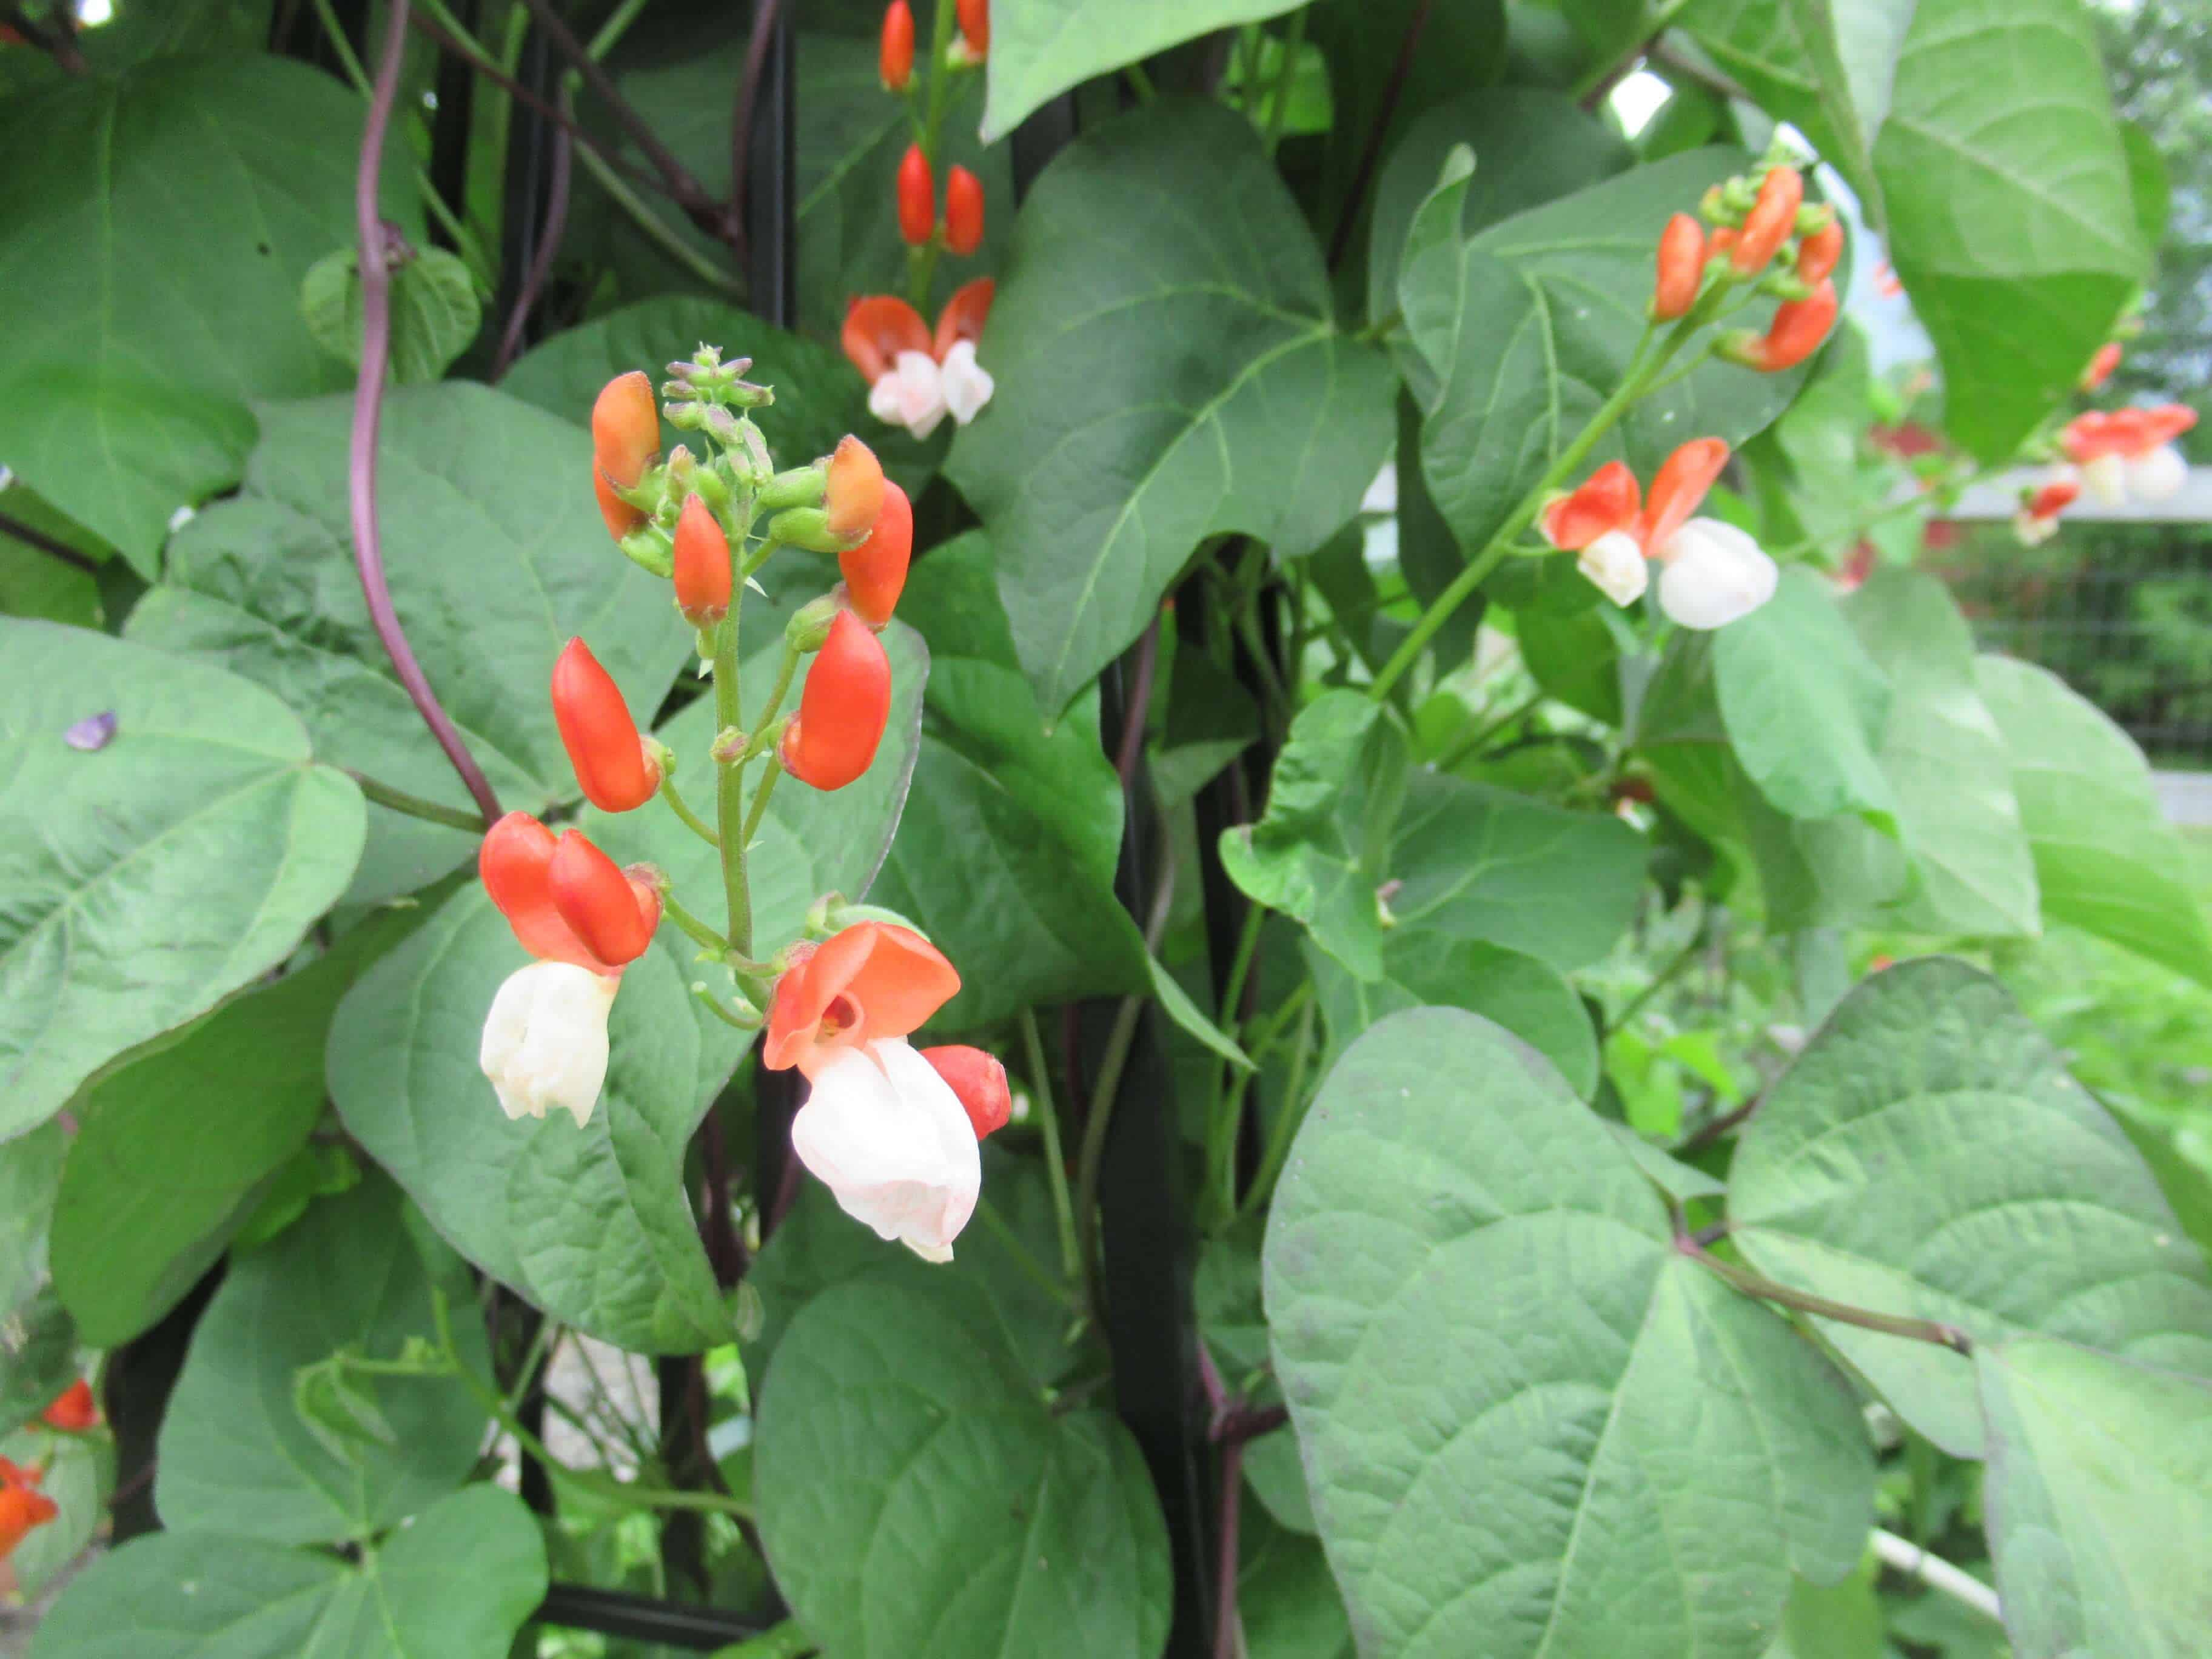 Bean plant Flowers red and white with green leaves